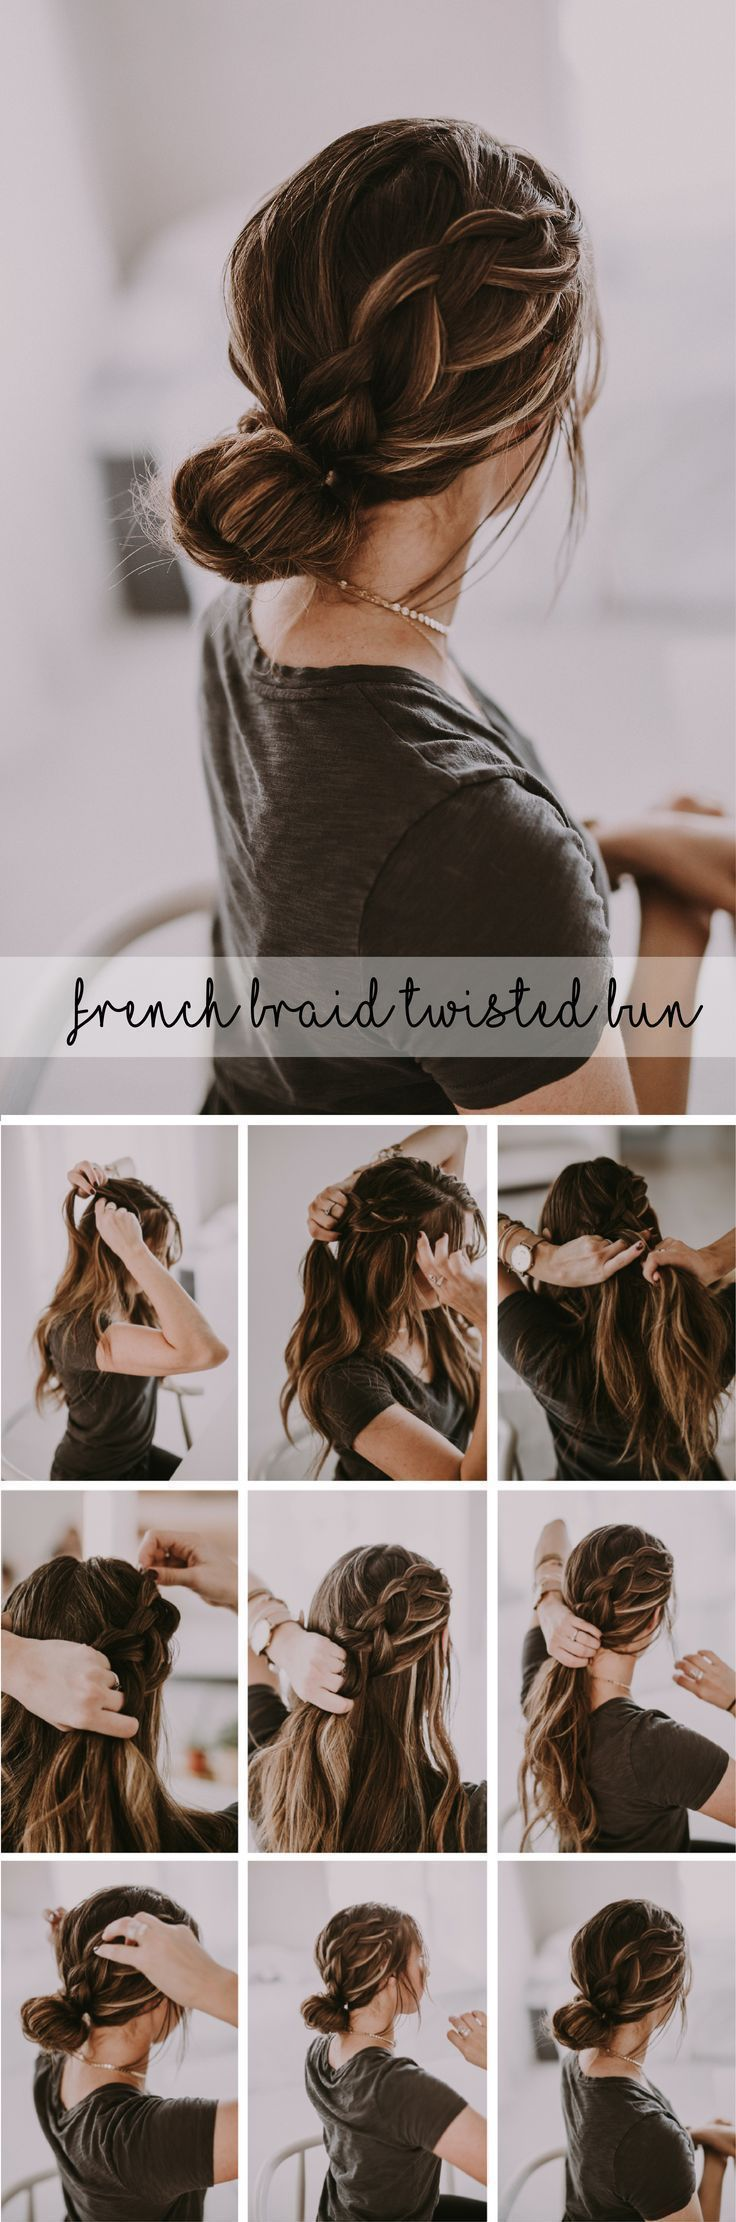 French Braid Bun Tutorials #easyupdo